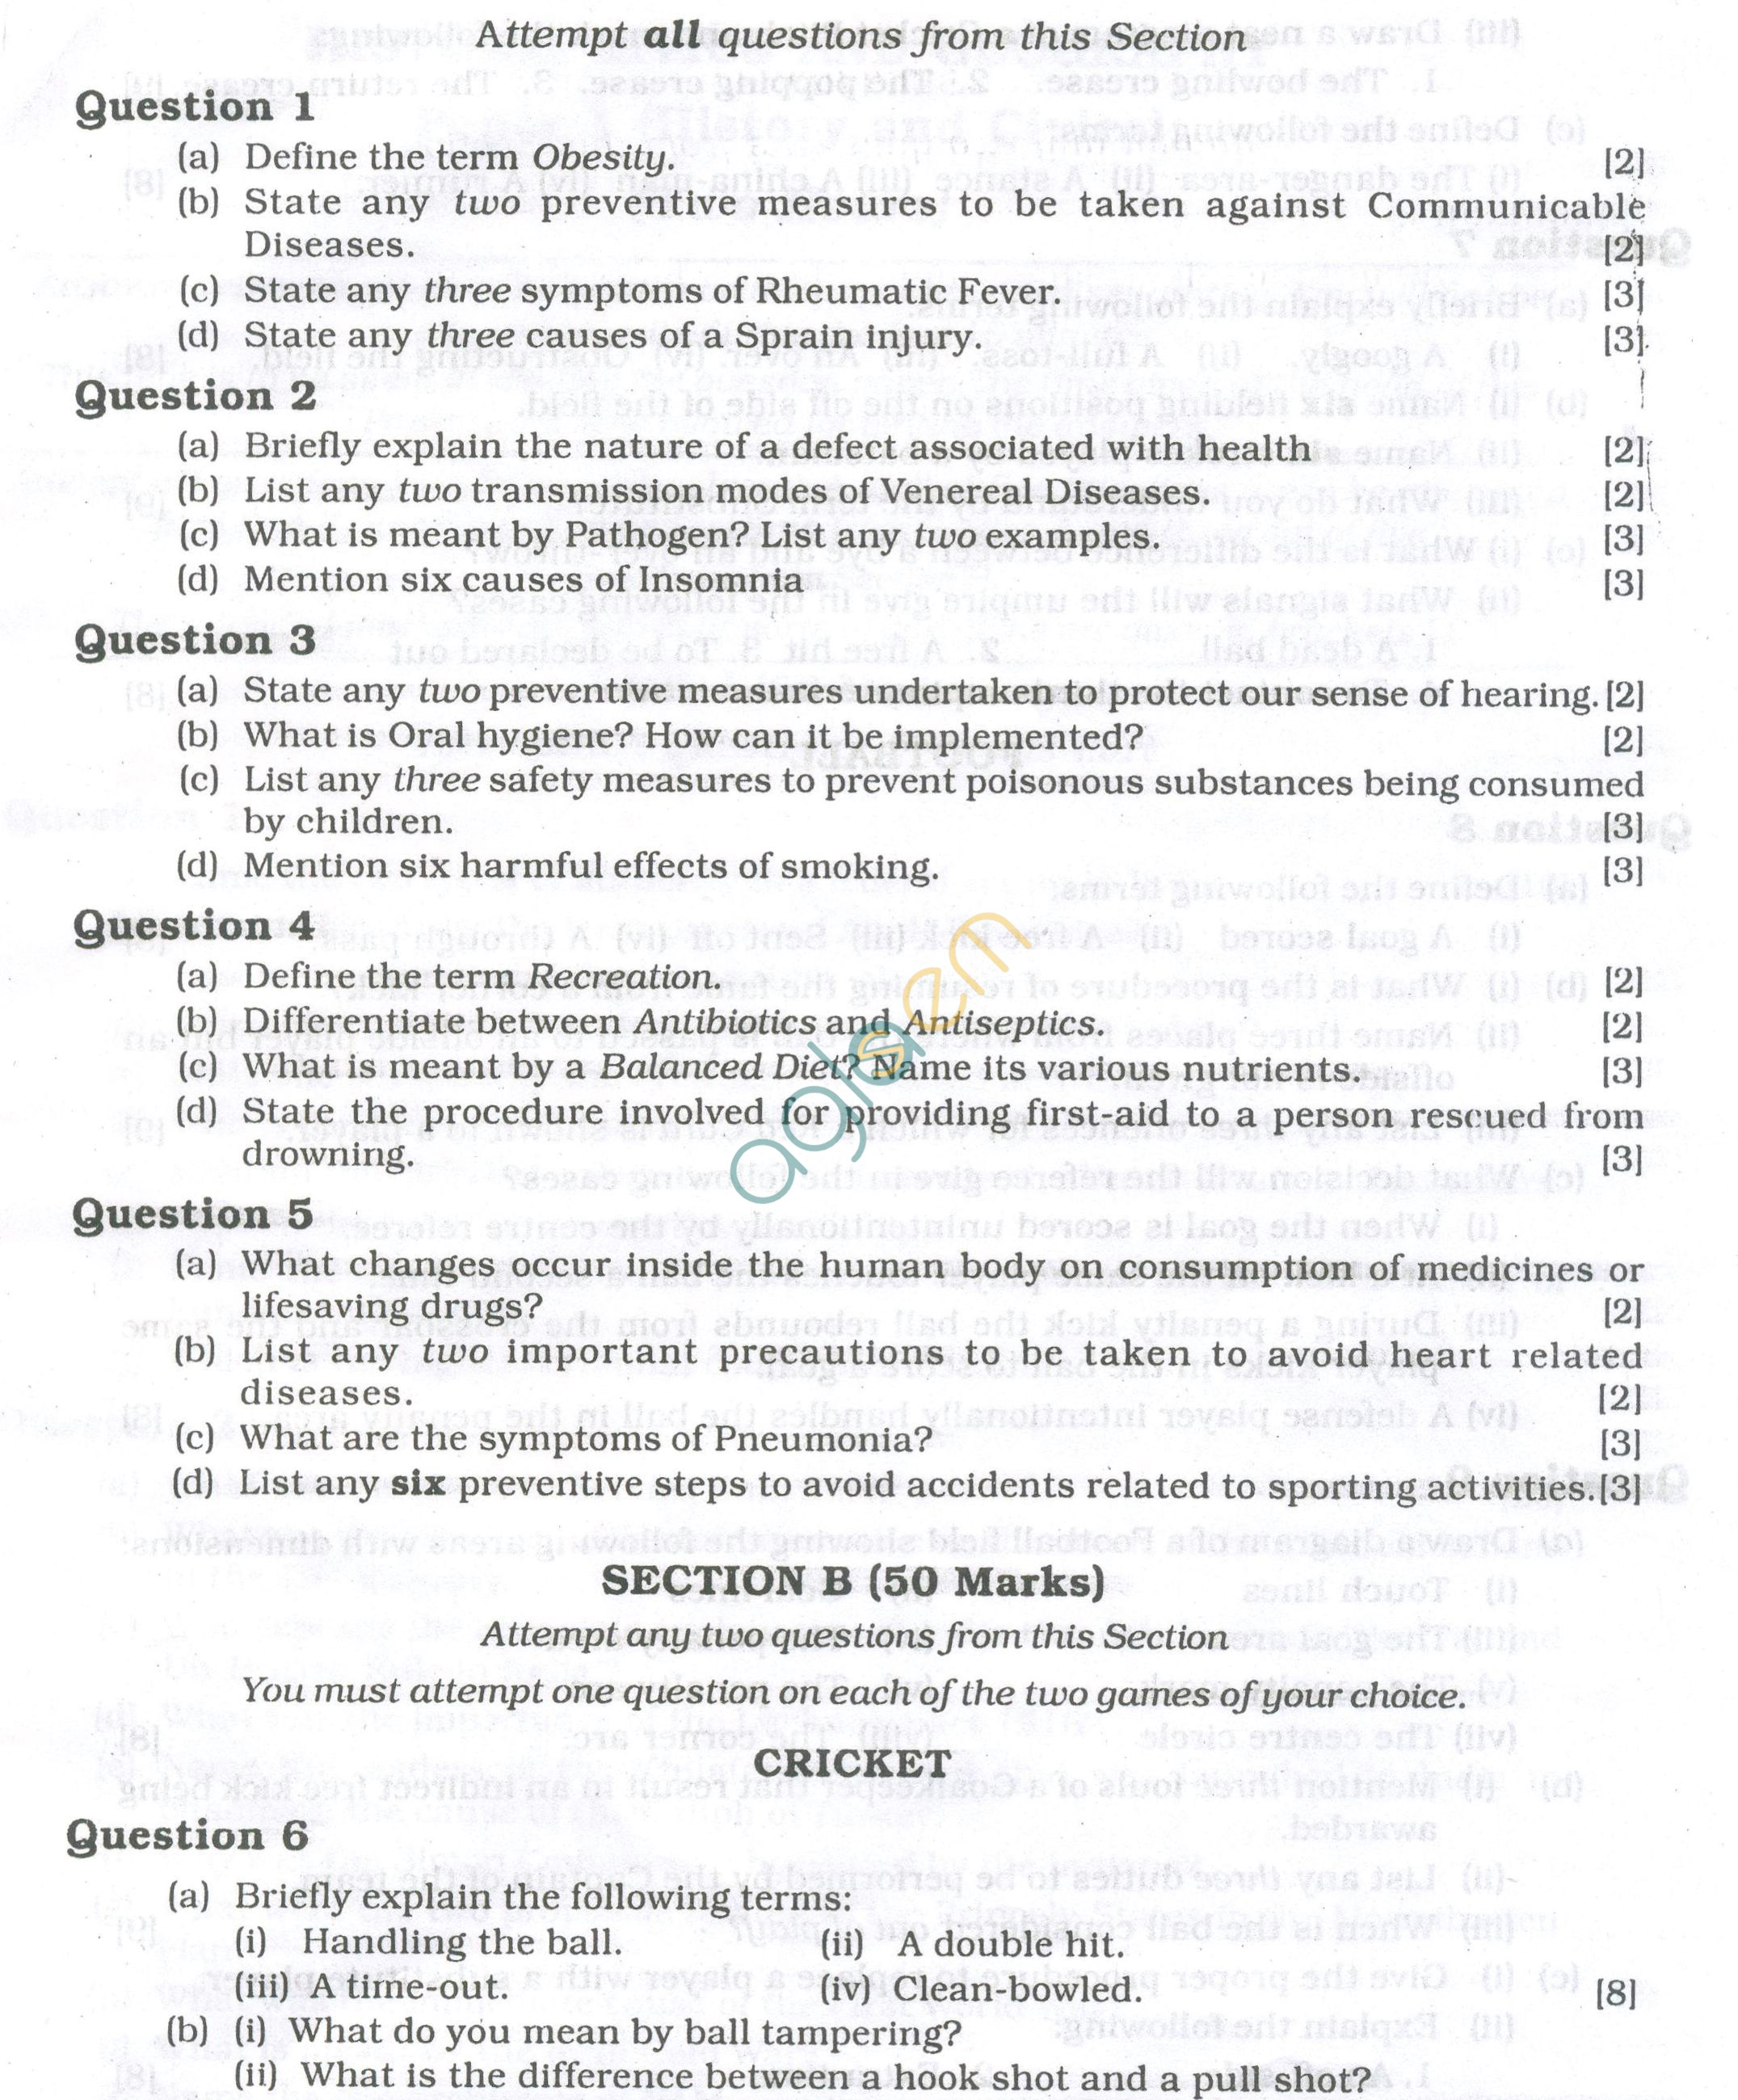 Icse question papers 2013 for class 10 physical education icse question papers 2013 for class 10 physical education malvernweather